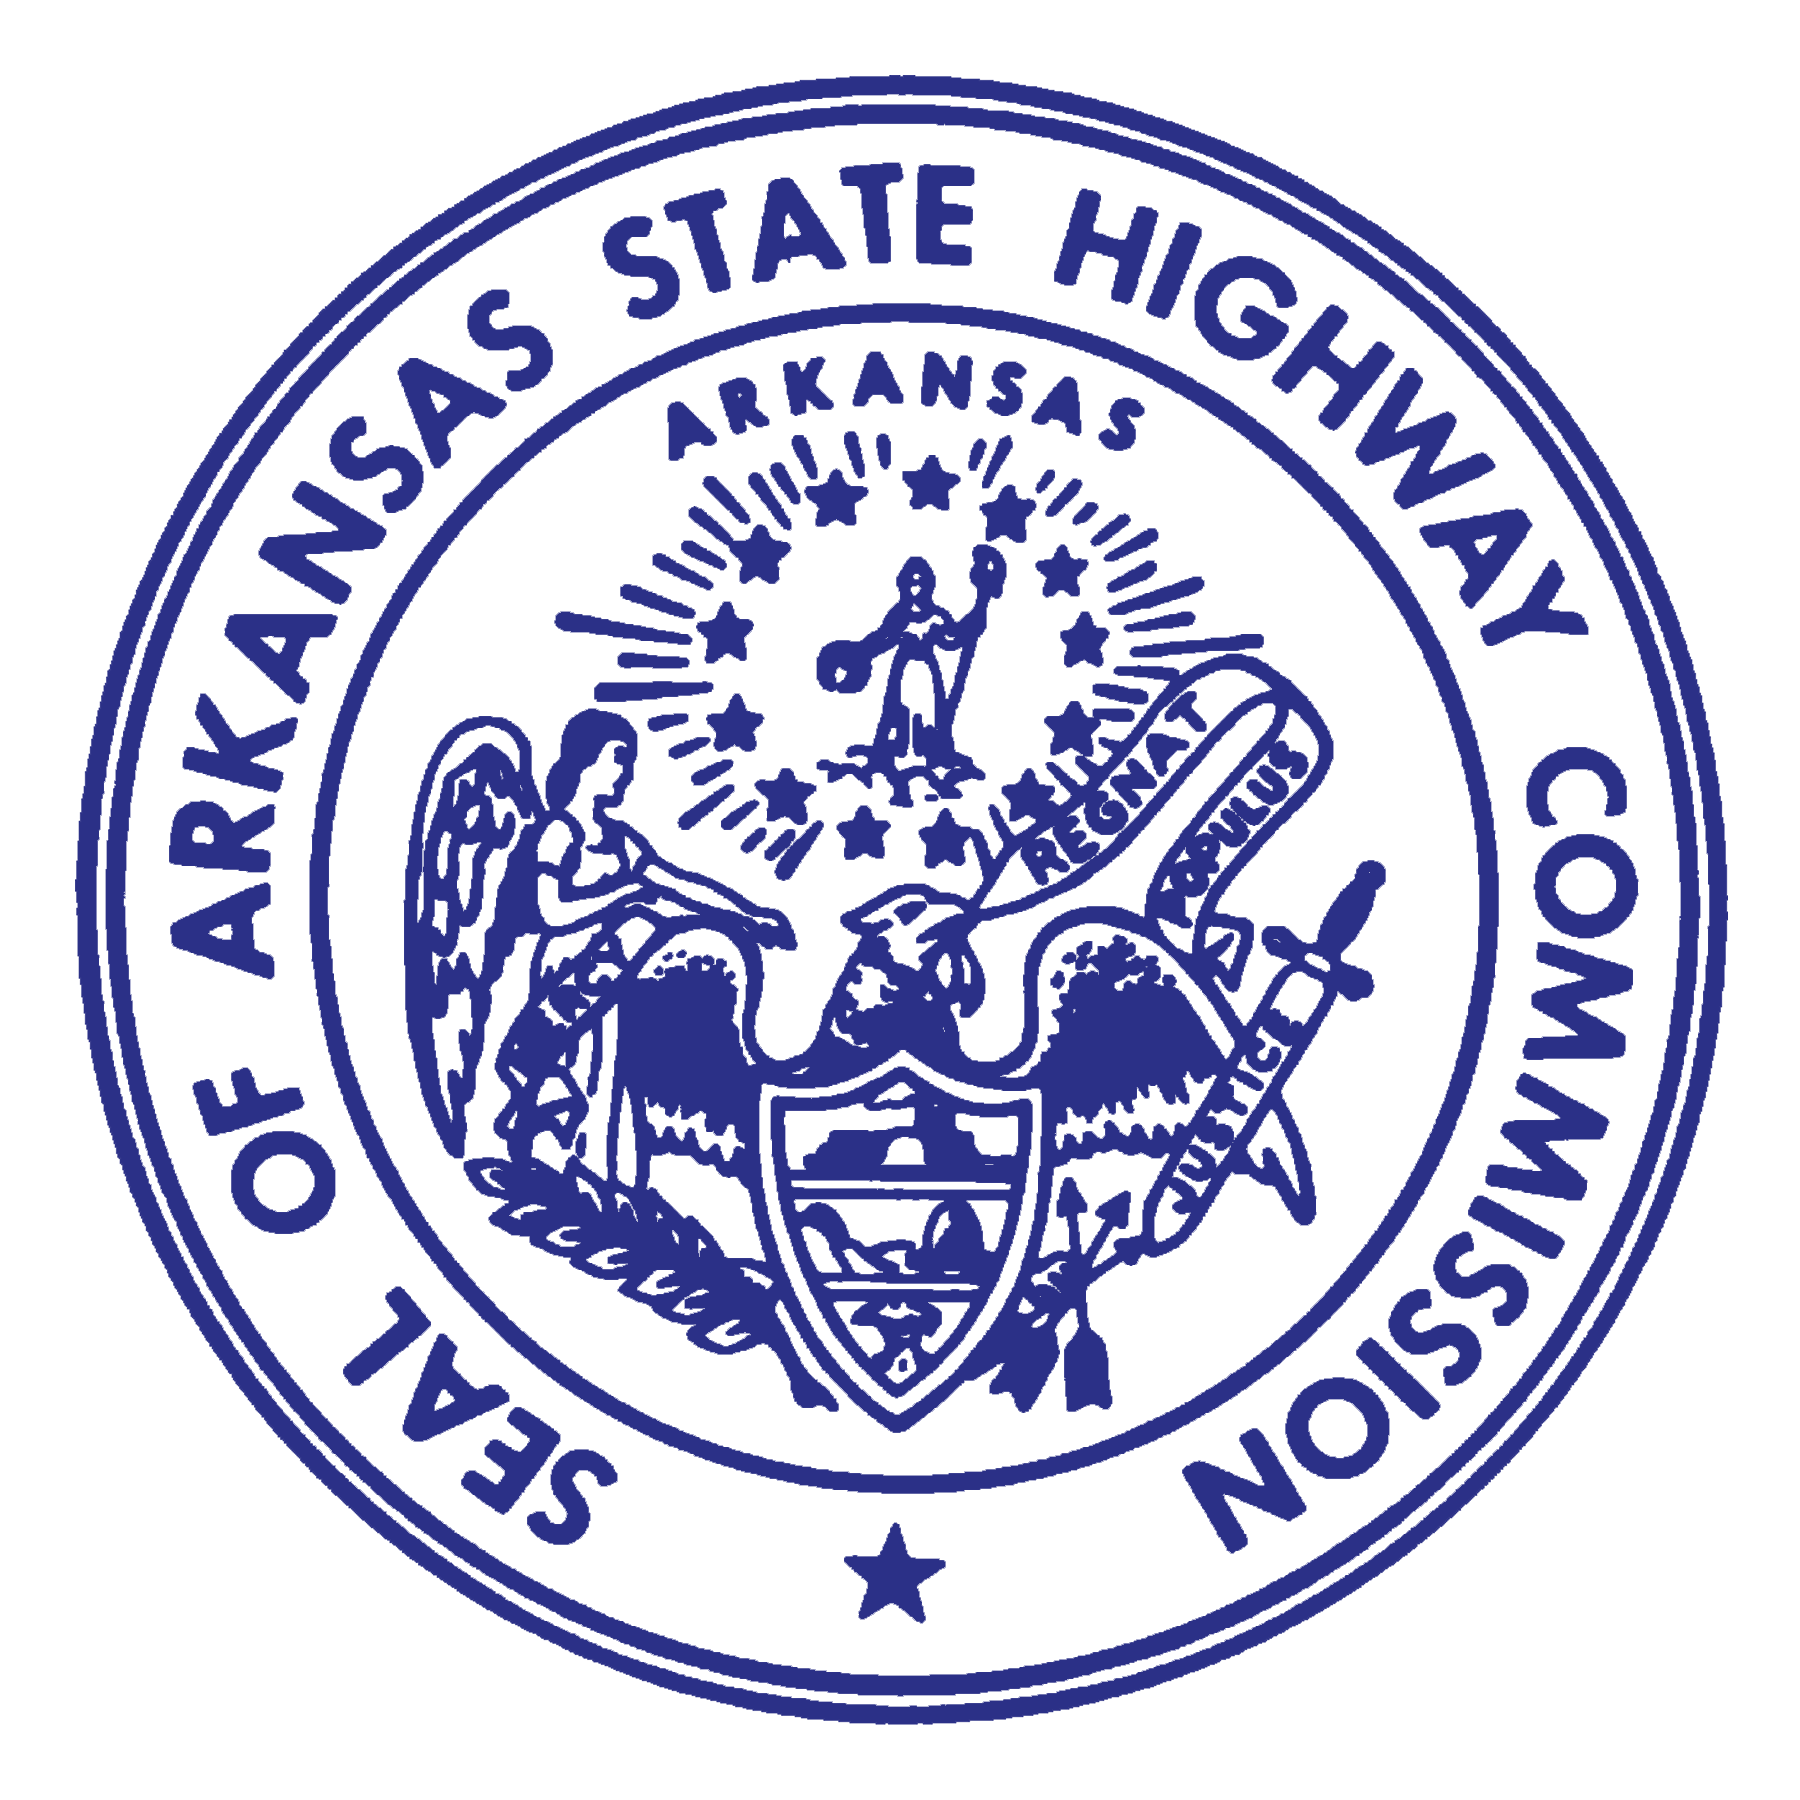 Arkansas State Highway and Transportation 50th Commission